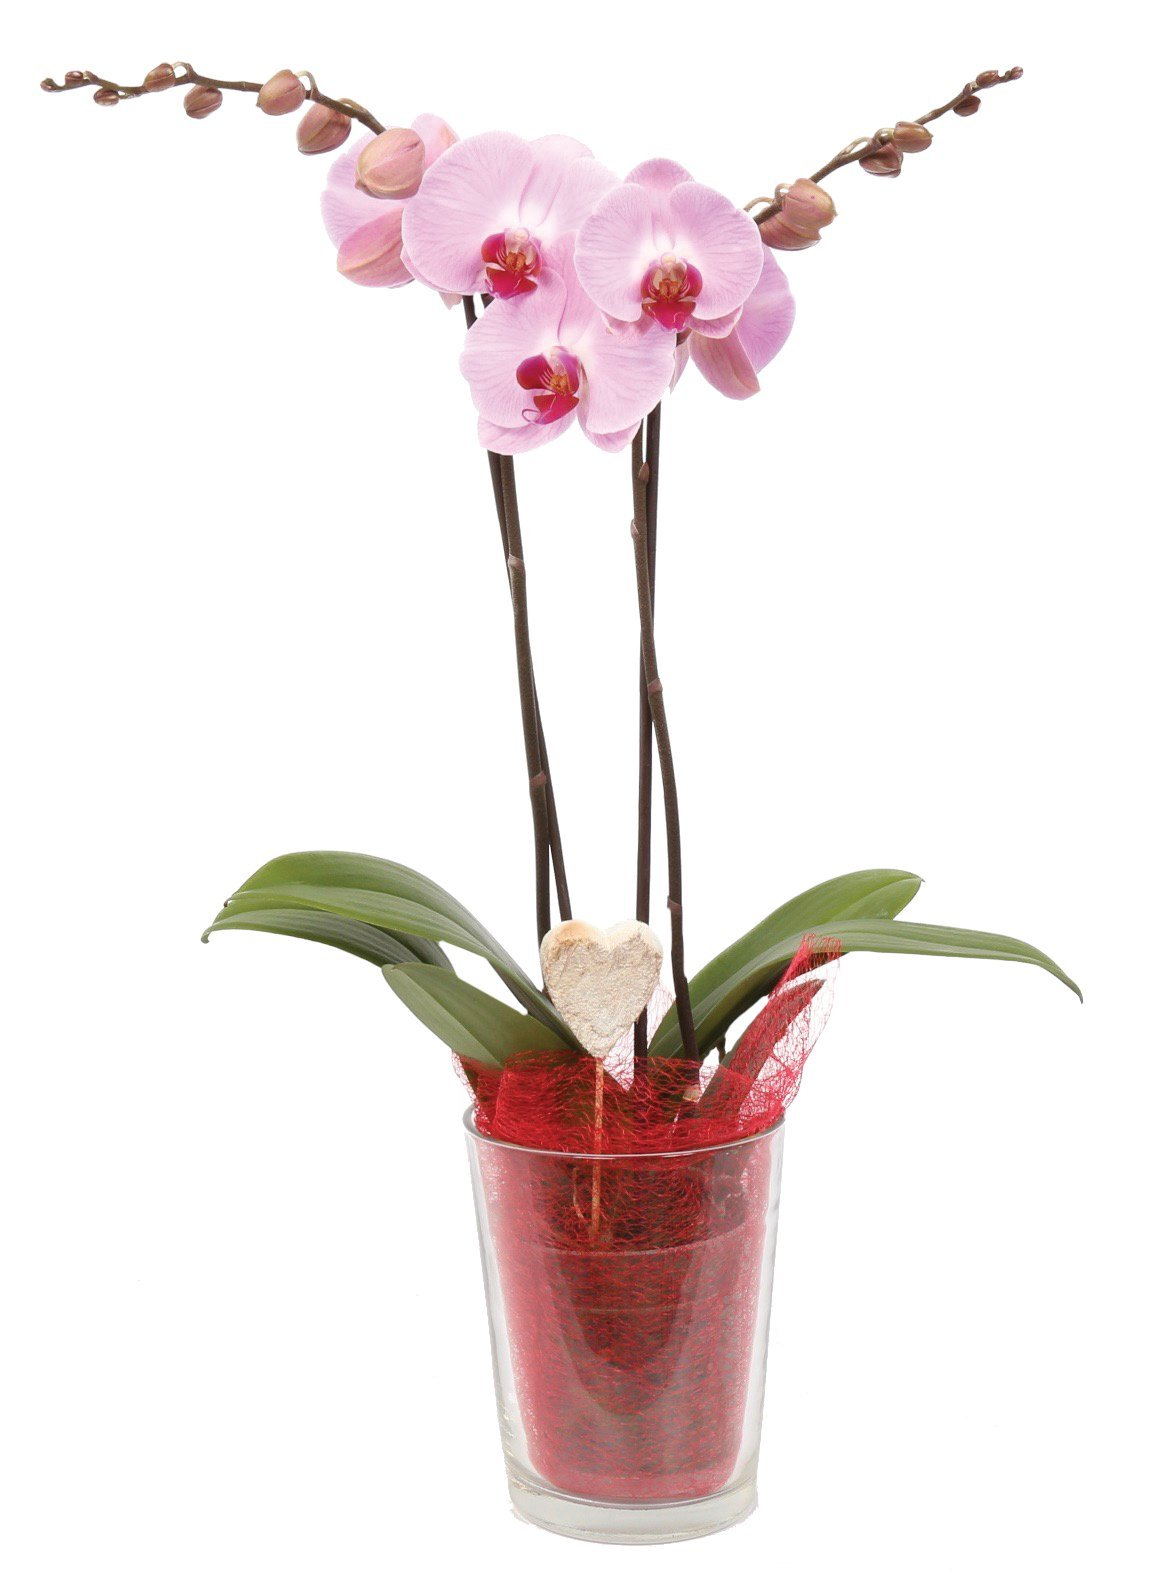 Color Orchids 73477 Live Holiday Blooming Double Stem Phalaenopsis Orchid Plant in Glass Pot, 20''- 24'' Tall, Red Valentines with Heart Pick